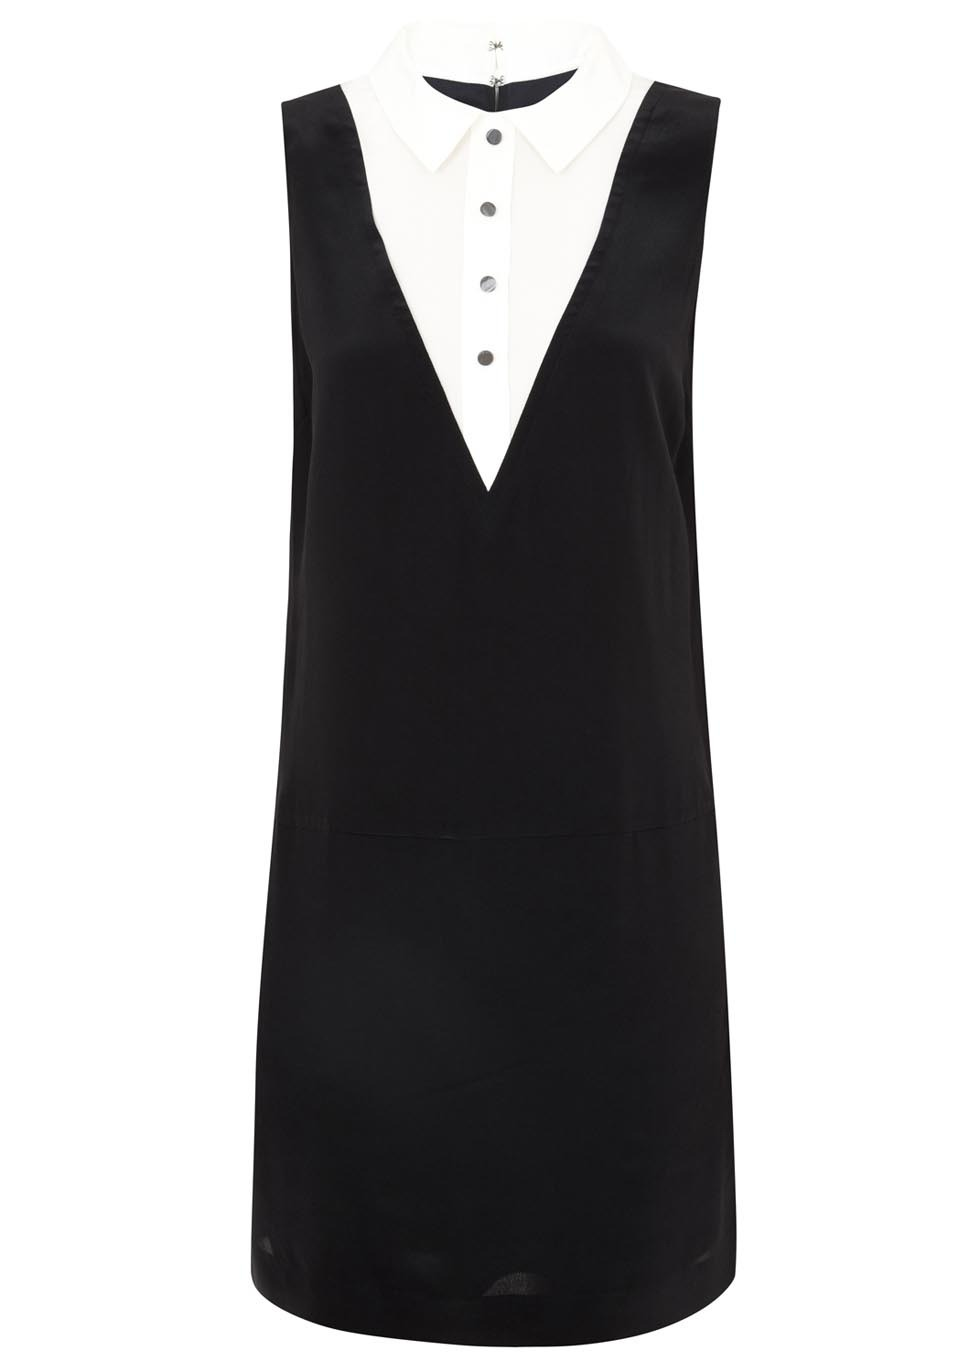 Monochrome Tuxedo Style Silk Dress - style: shift; length: mid thigh; neckline: shirt collar/peter pan/zip with opening; secondary colour: white; predominant colour: black; occasions: evening, creative work; fit: soft a-line; fibres: silk - 100%; sleeve length: sleeveless; sleeve style: standard; texture group: crepes; pattern type: fabric; pattern: colourblock; season: s/s 2014; trends: monochrome